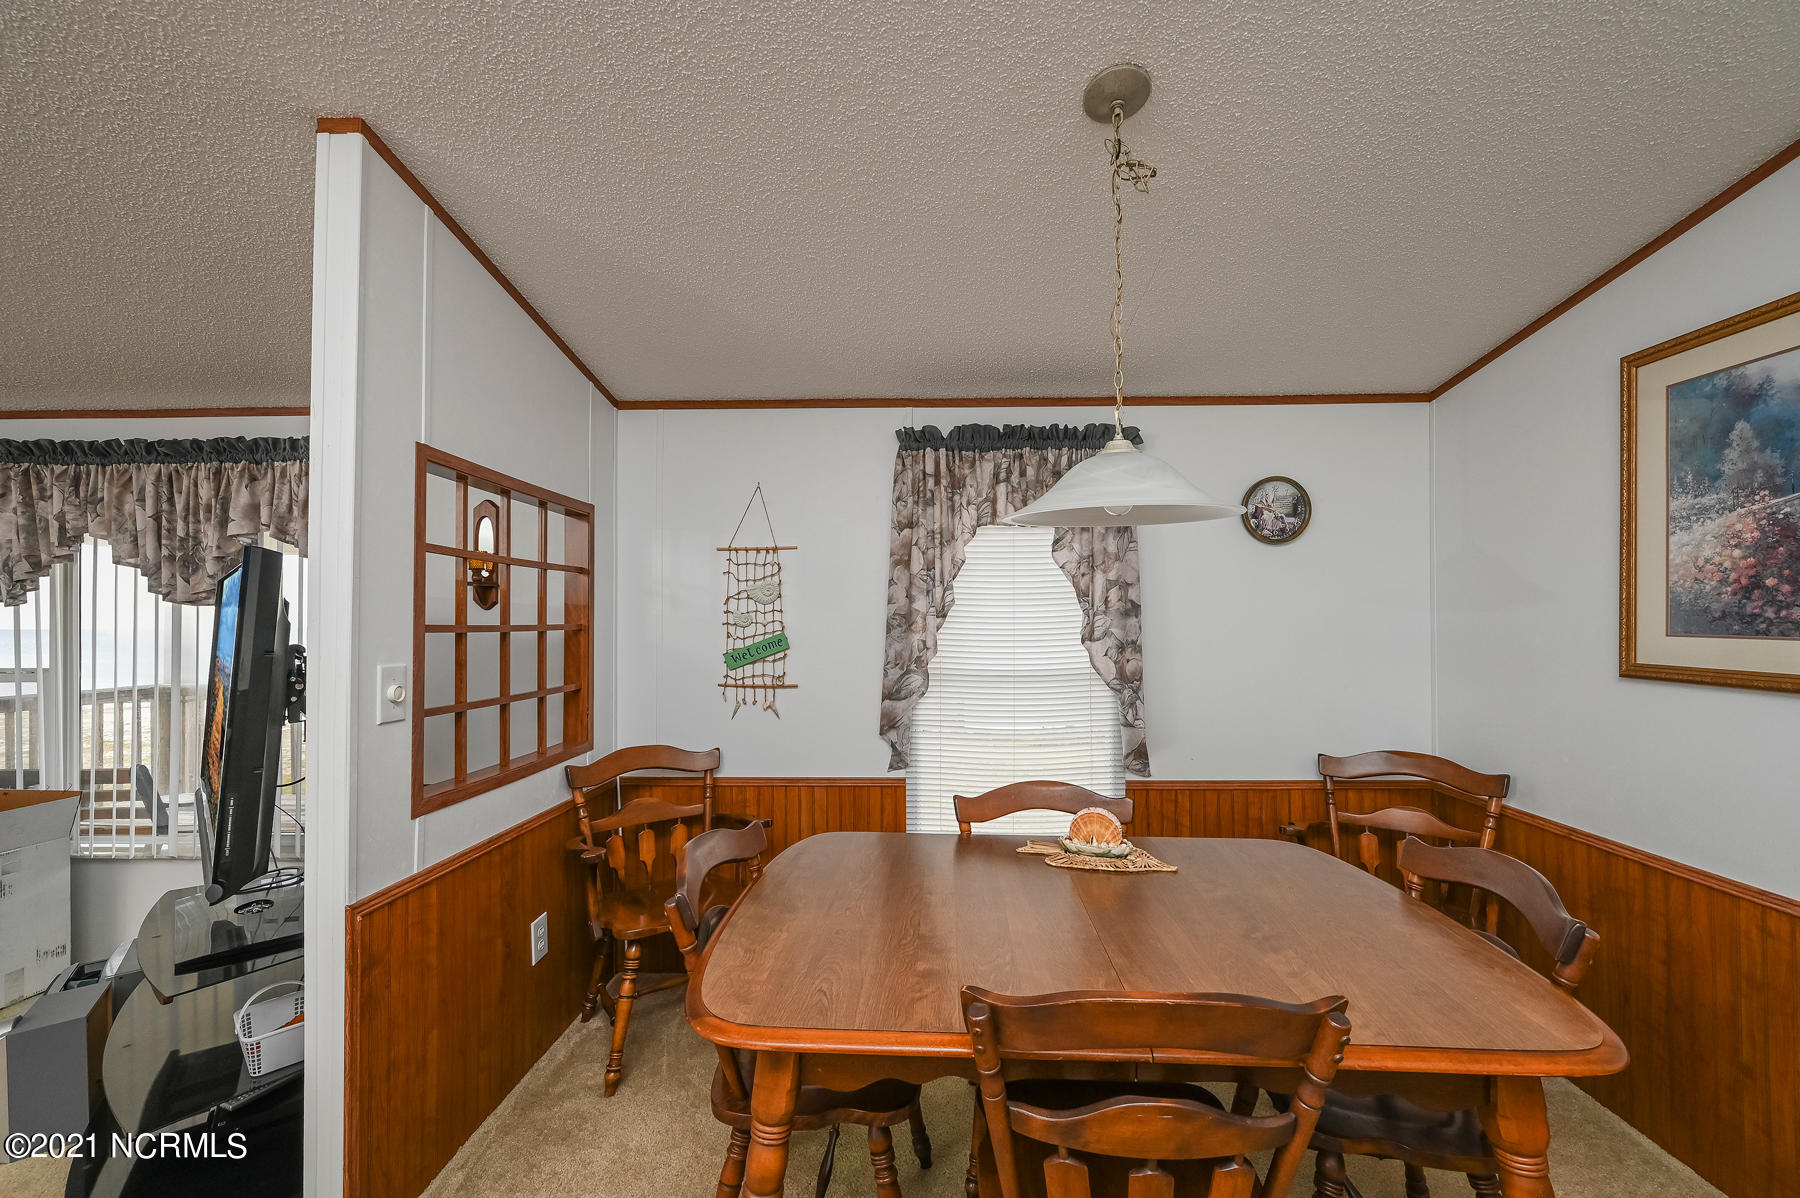 1658 Old Pamlico Beach Road, Belhaven, North Carolina 27810, 3 Bedrooms Bedrooms, 7 Rooms Rooms,2 BathroomsBathrooms,Manufactured home,For sale,Old Pamlico Beach,100261384